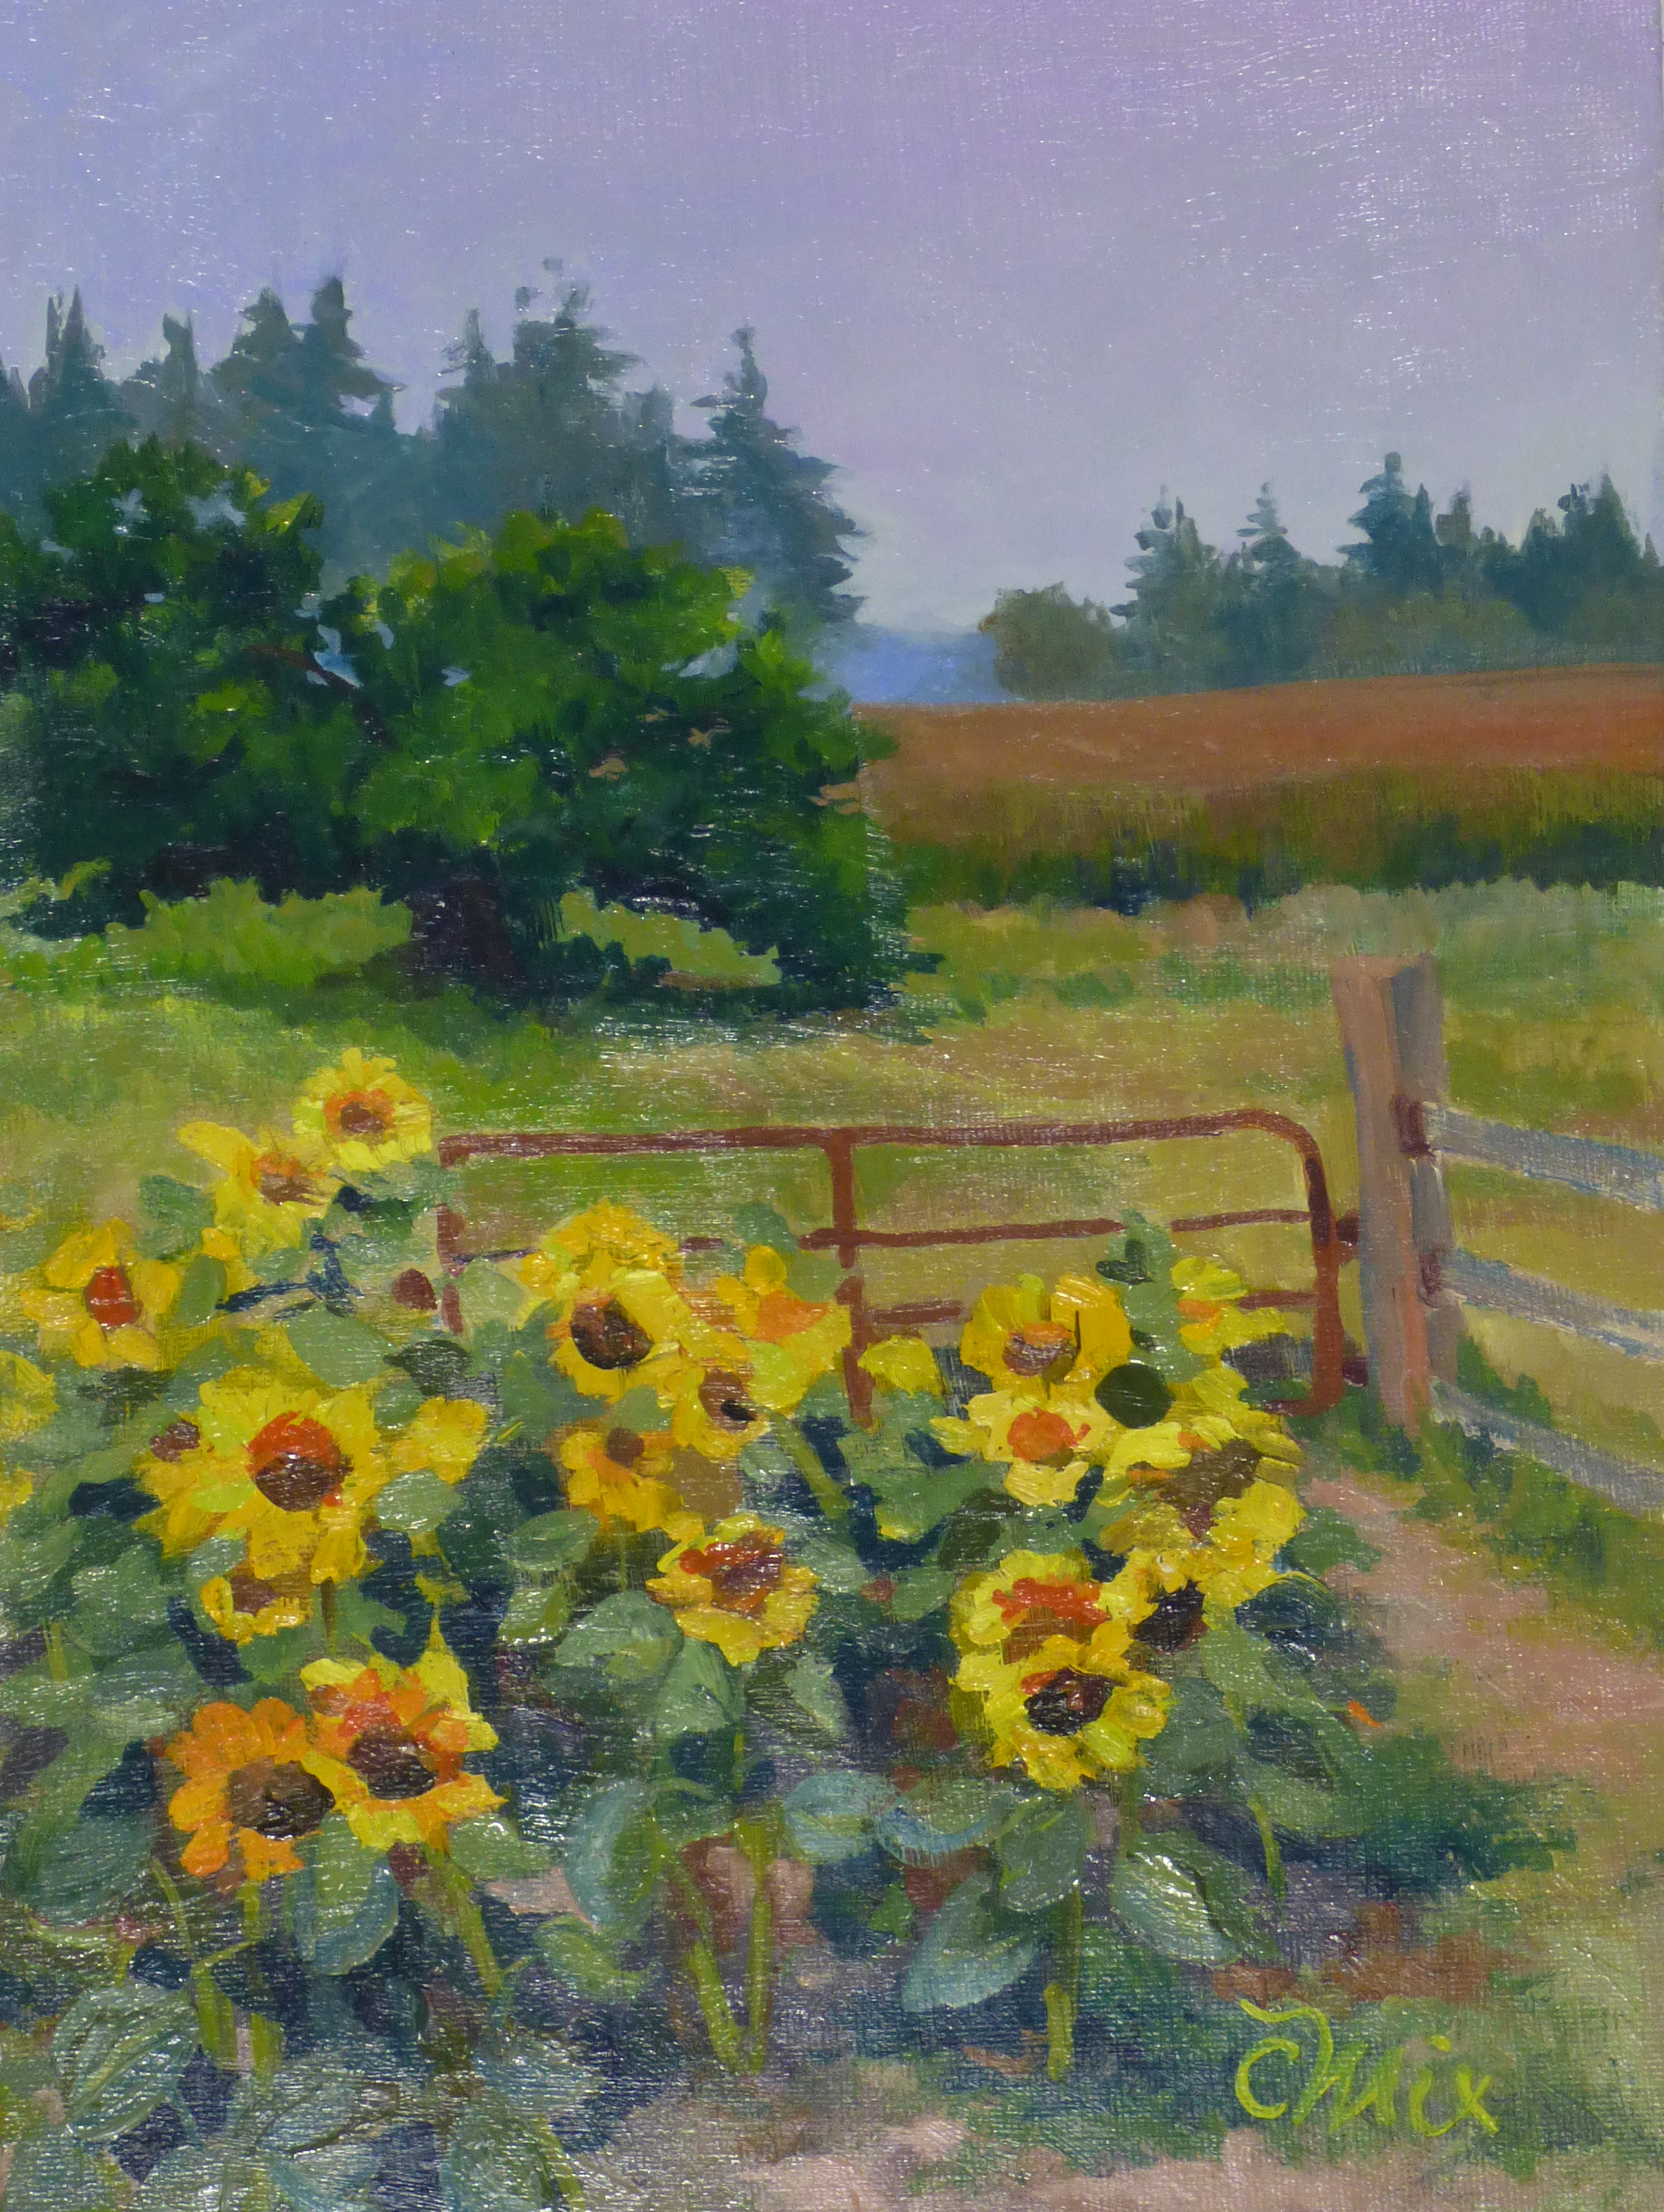 Sunflowers and Chickens